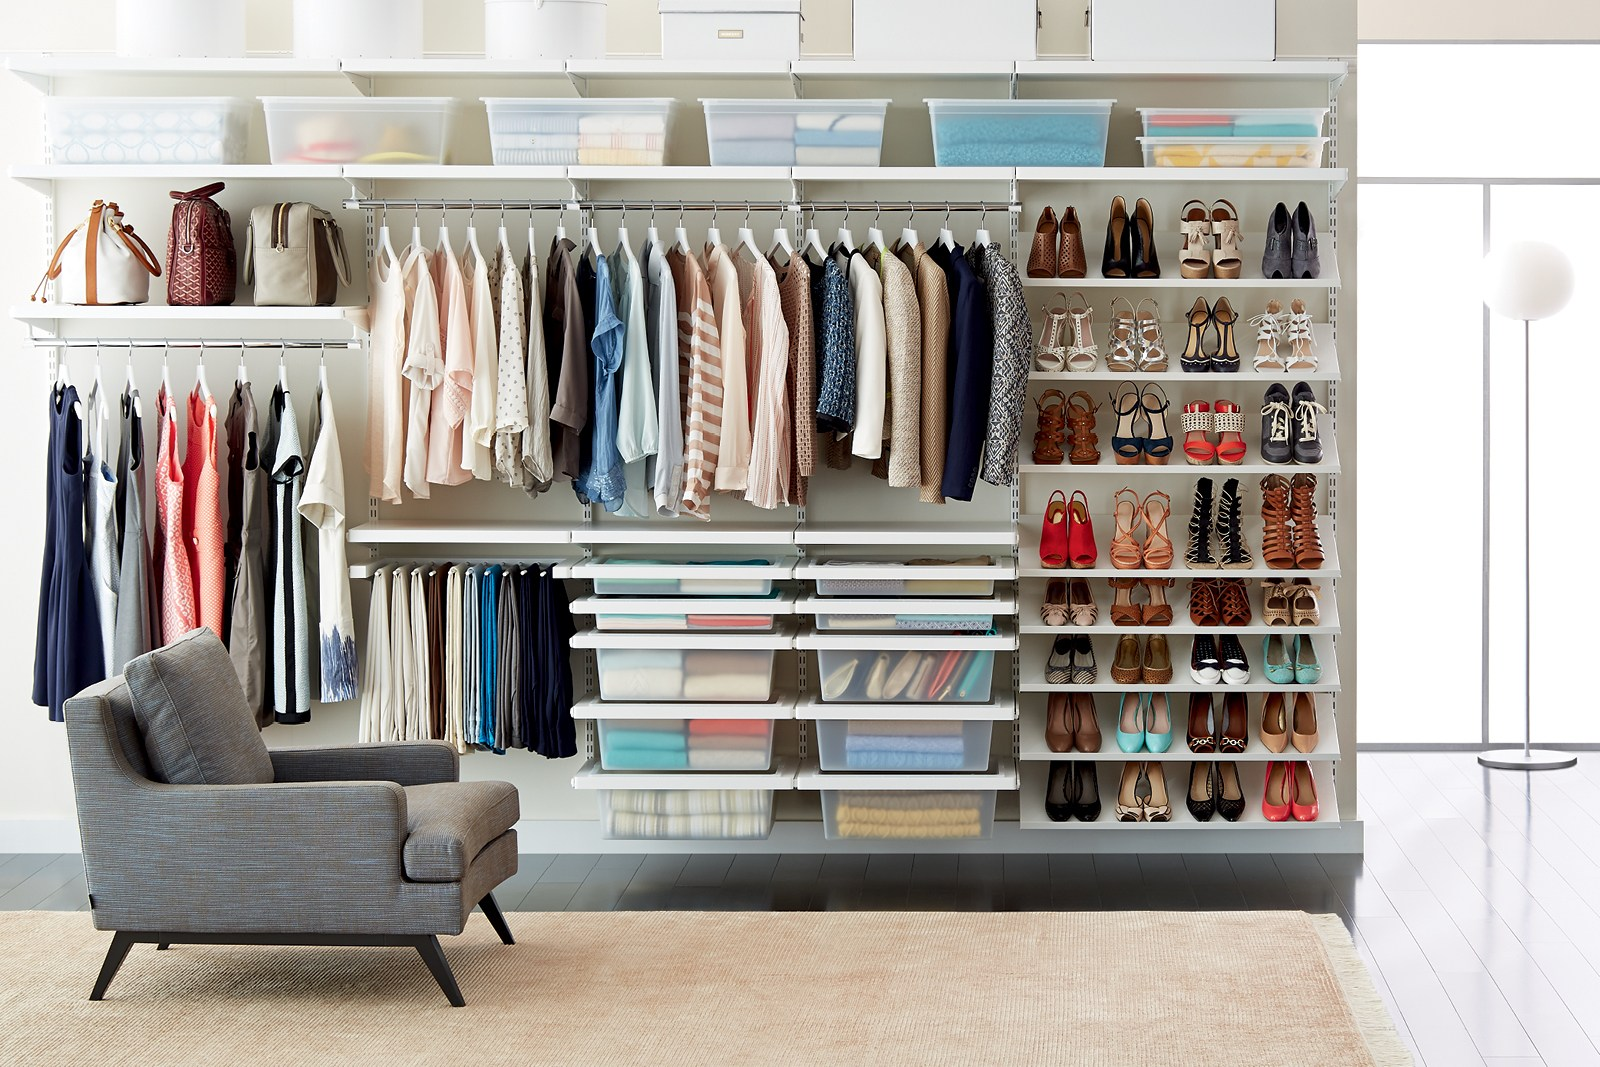 Cool-blog-post-closet-storage-ideas-how-to-organize-your